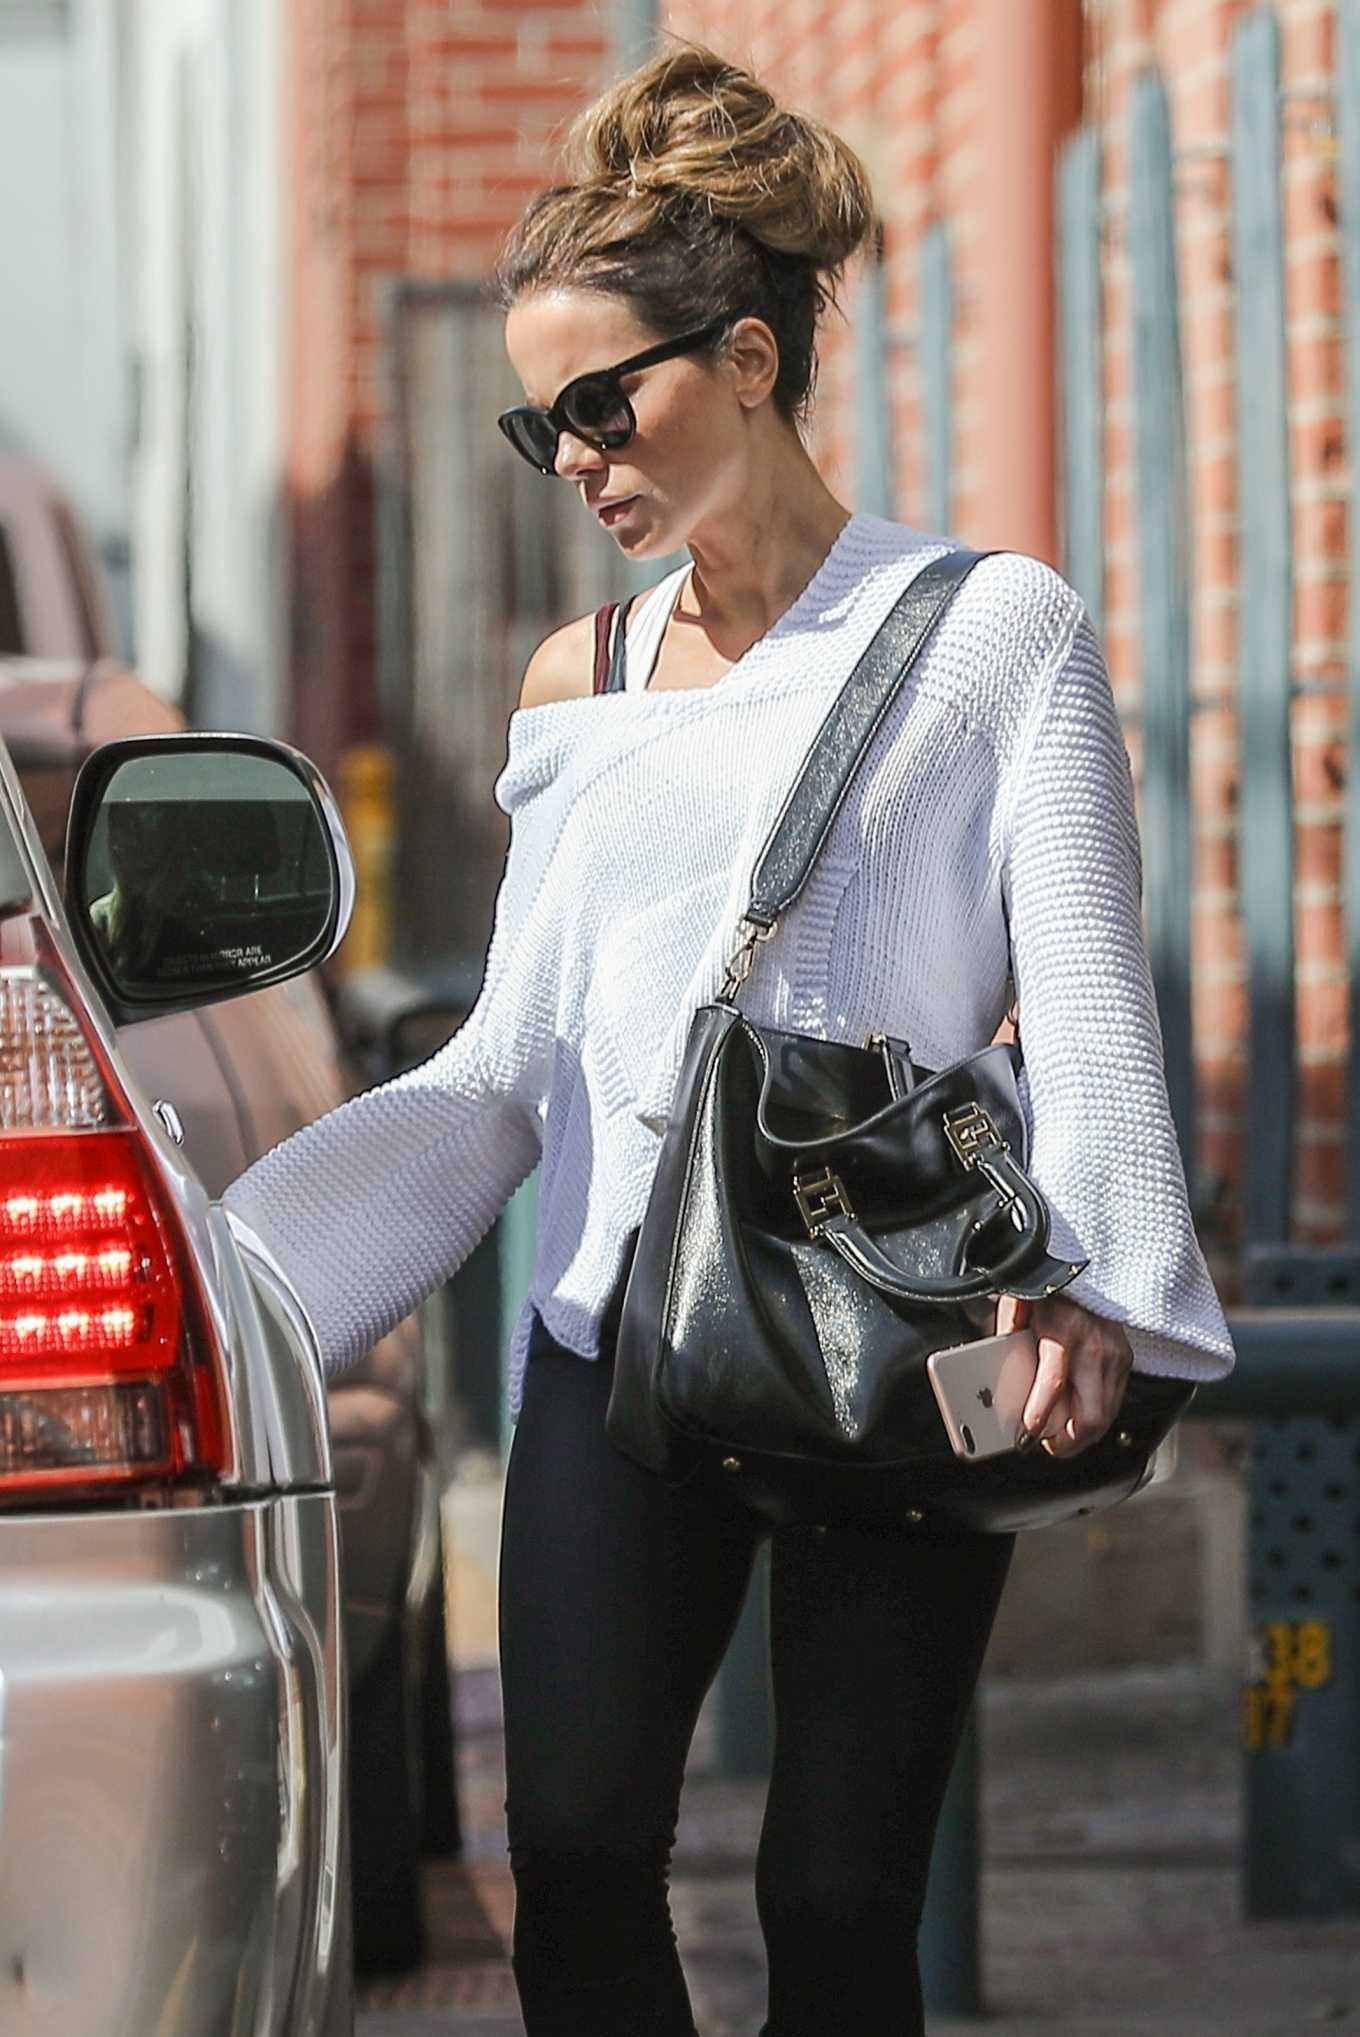 Kate Beckinsale in Black Leggings While Exit a medical building in Los Angeles